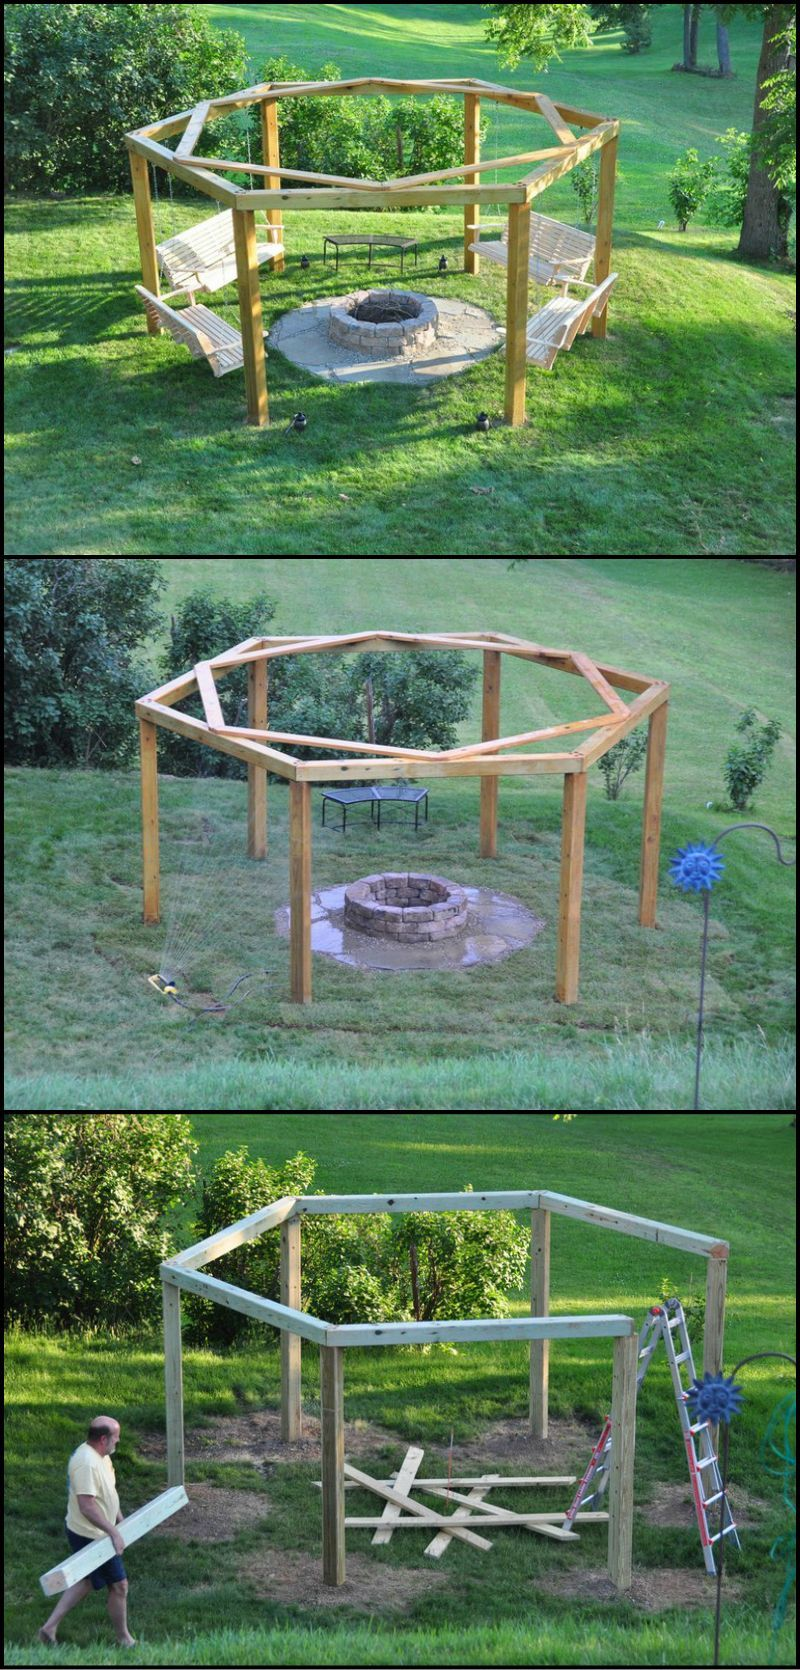 5 Swing Fire Pit How To Build Your Own Fire Pit Swing Set Http